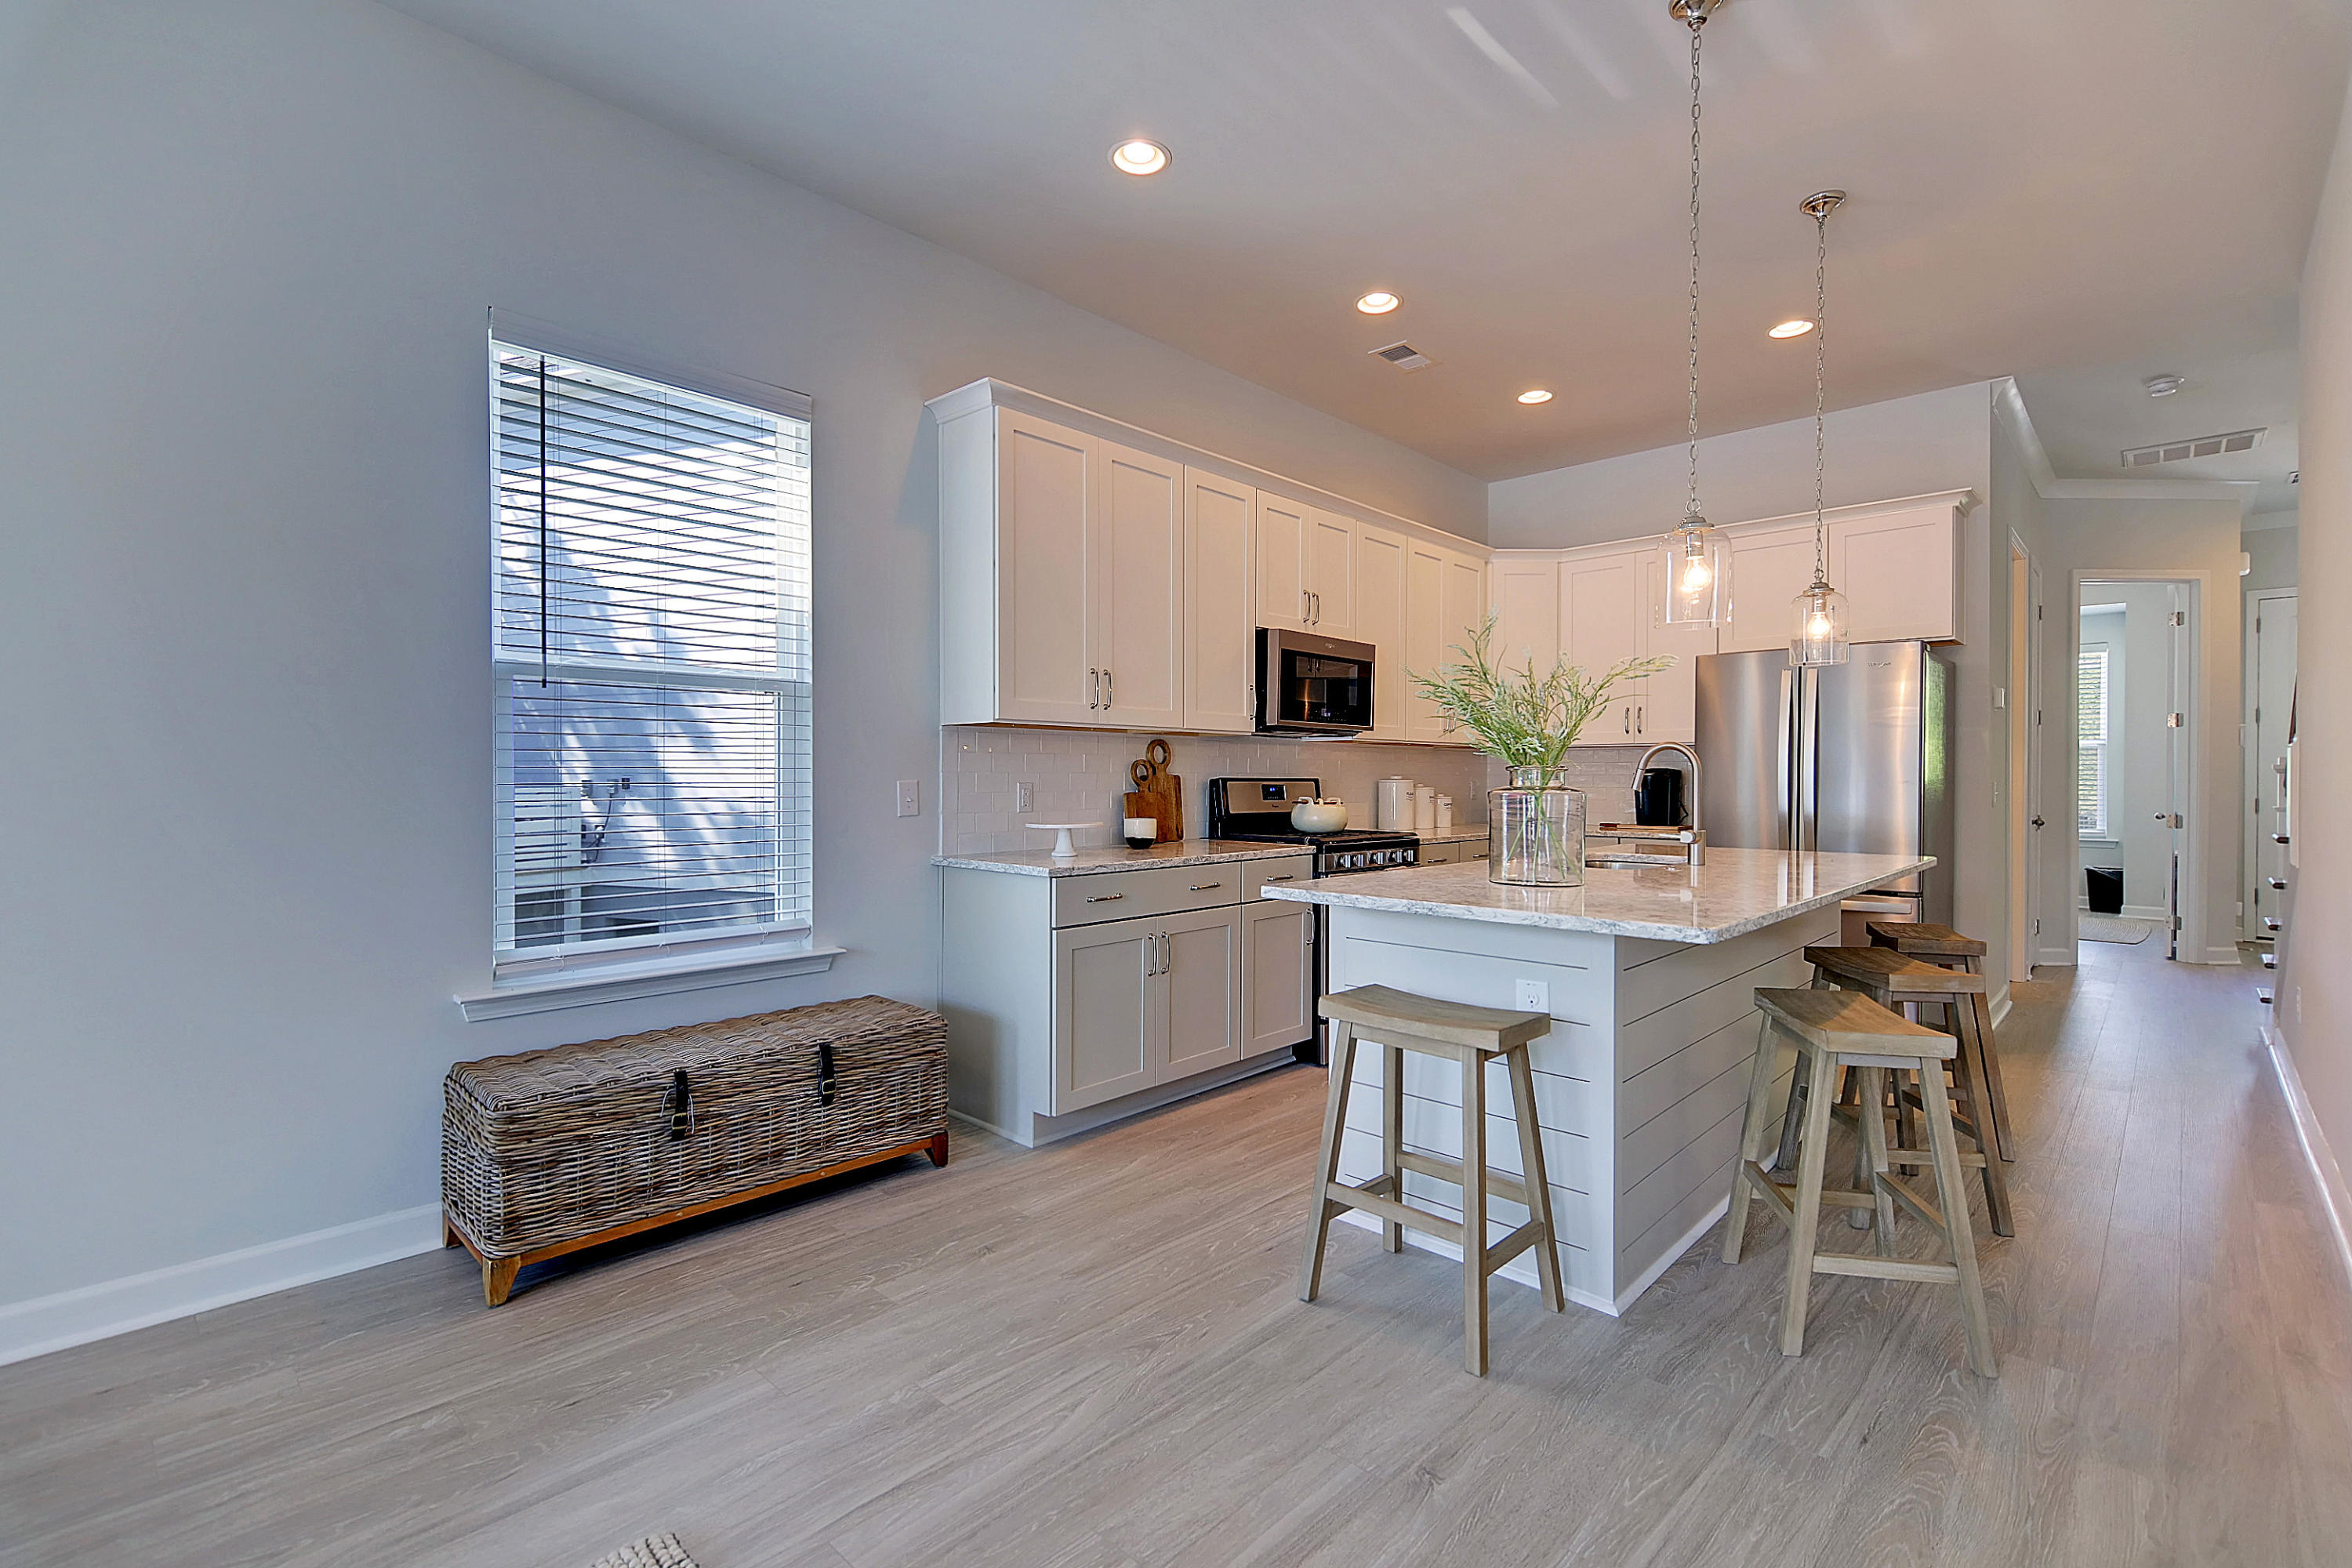 Sable On The Marsh Homes For Sale - 124 Howard Mary, Charleston, SC - 17